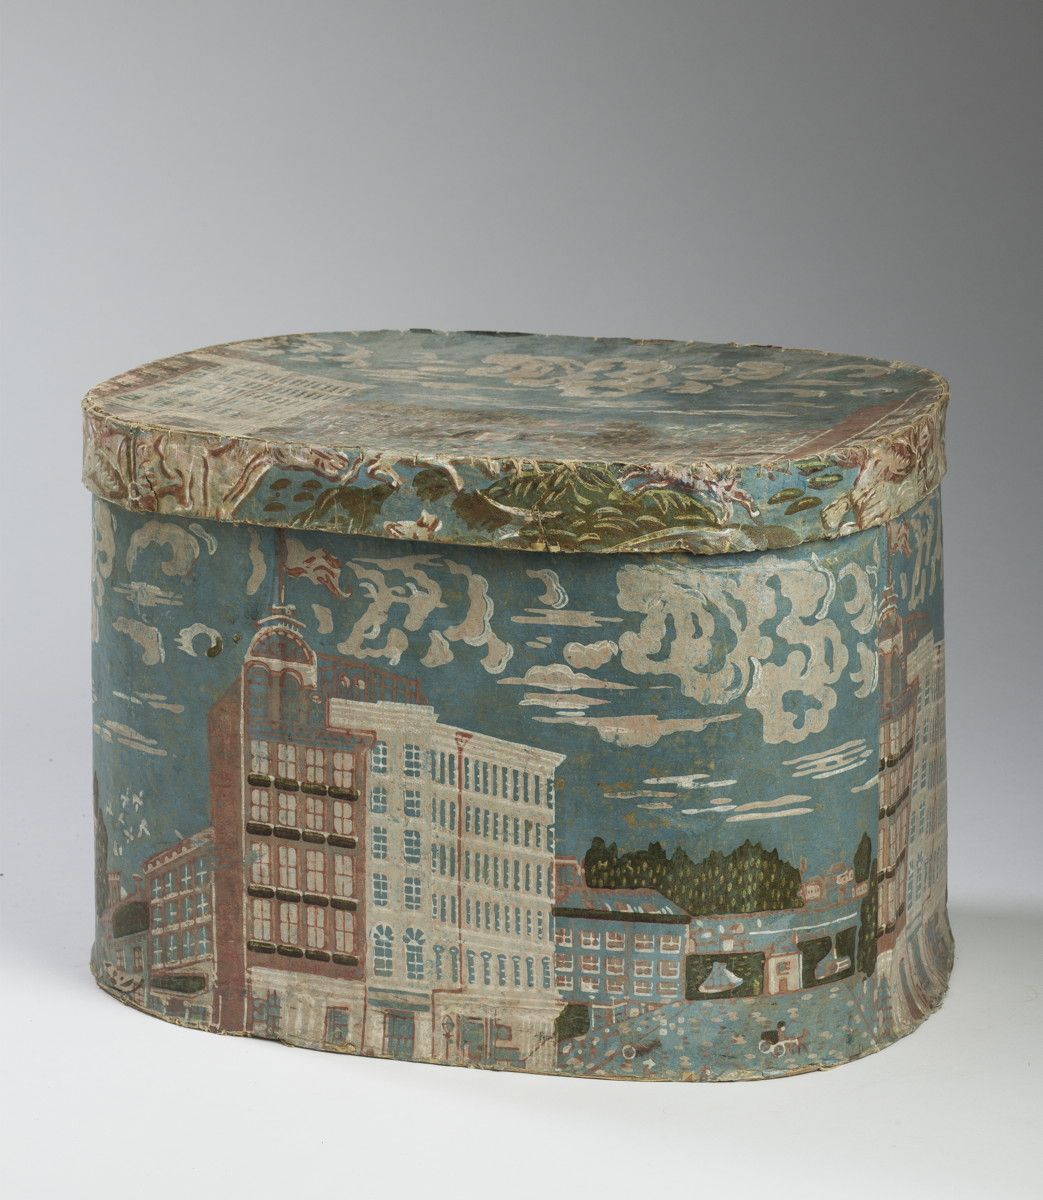 HOLT'S NEW HOTEL, NEW YORK CITY. A BLUE HATBOX WITH DOWNTOWN SKYLINE